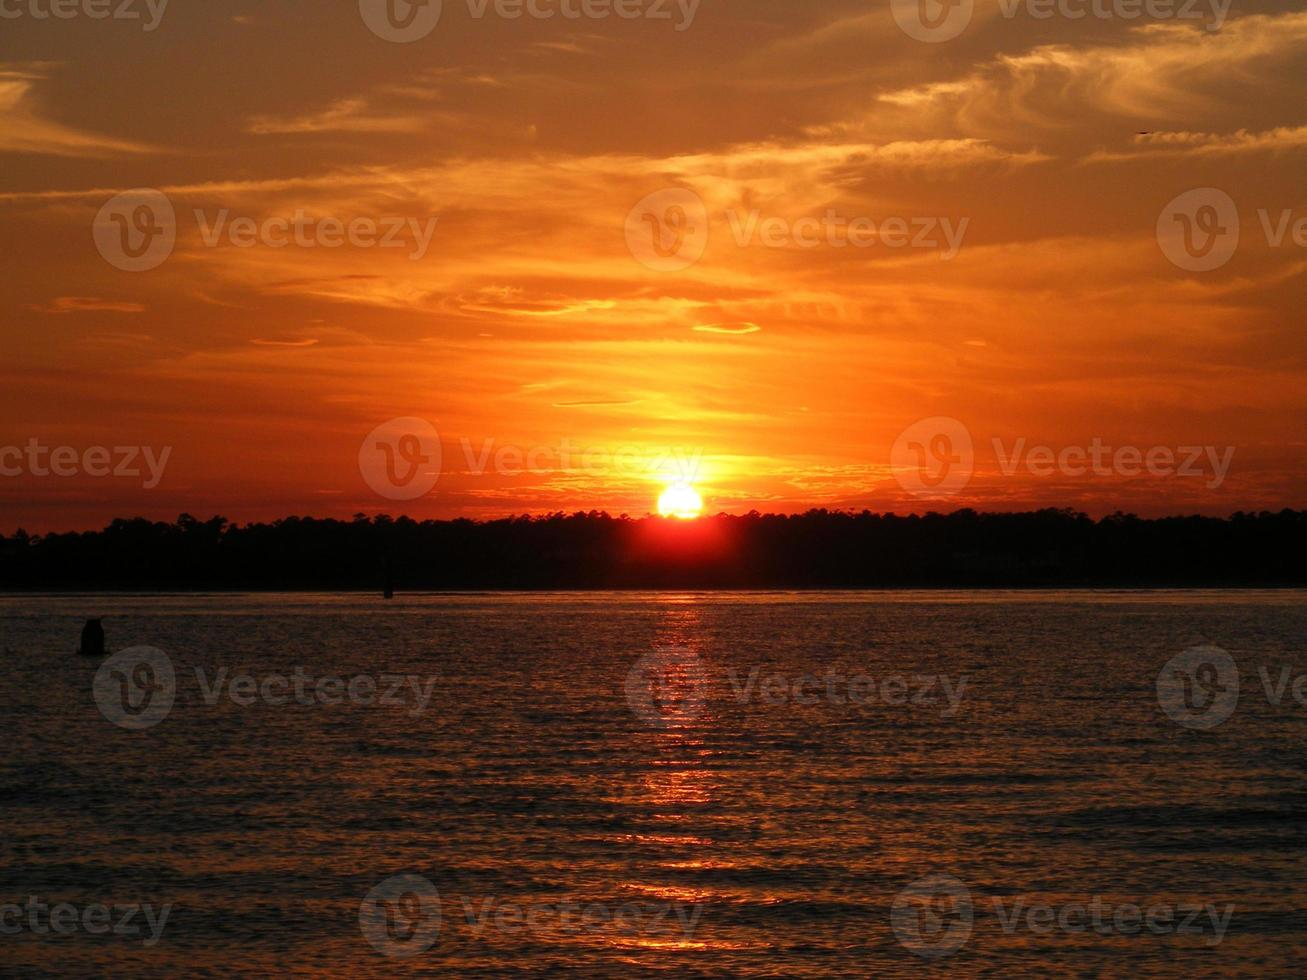 Sunset over Banks Channel from Wrightsville Beach, NC USA photo